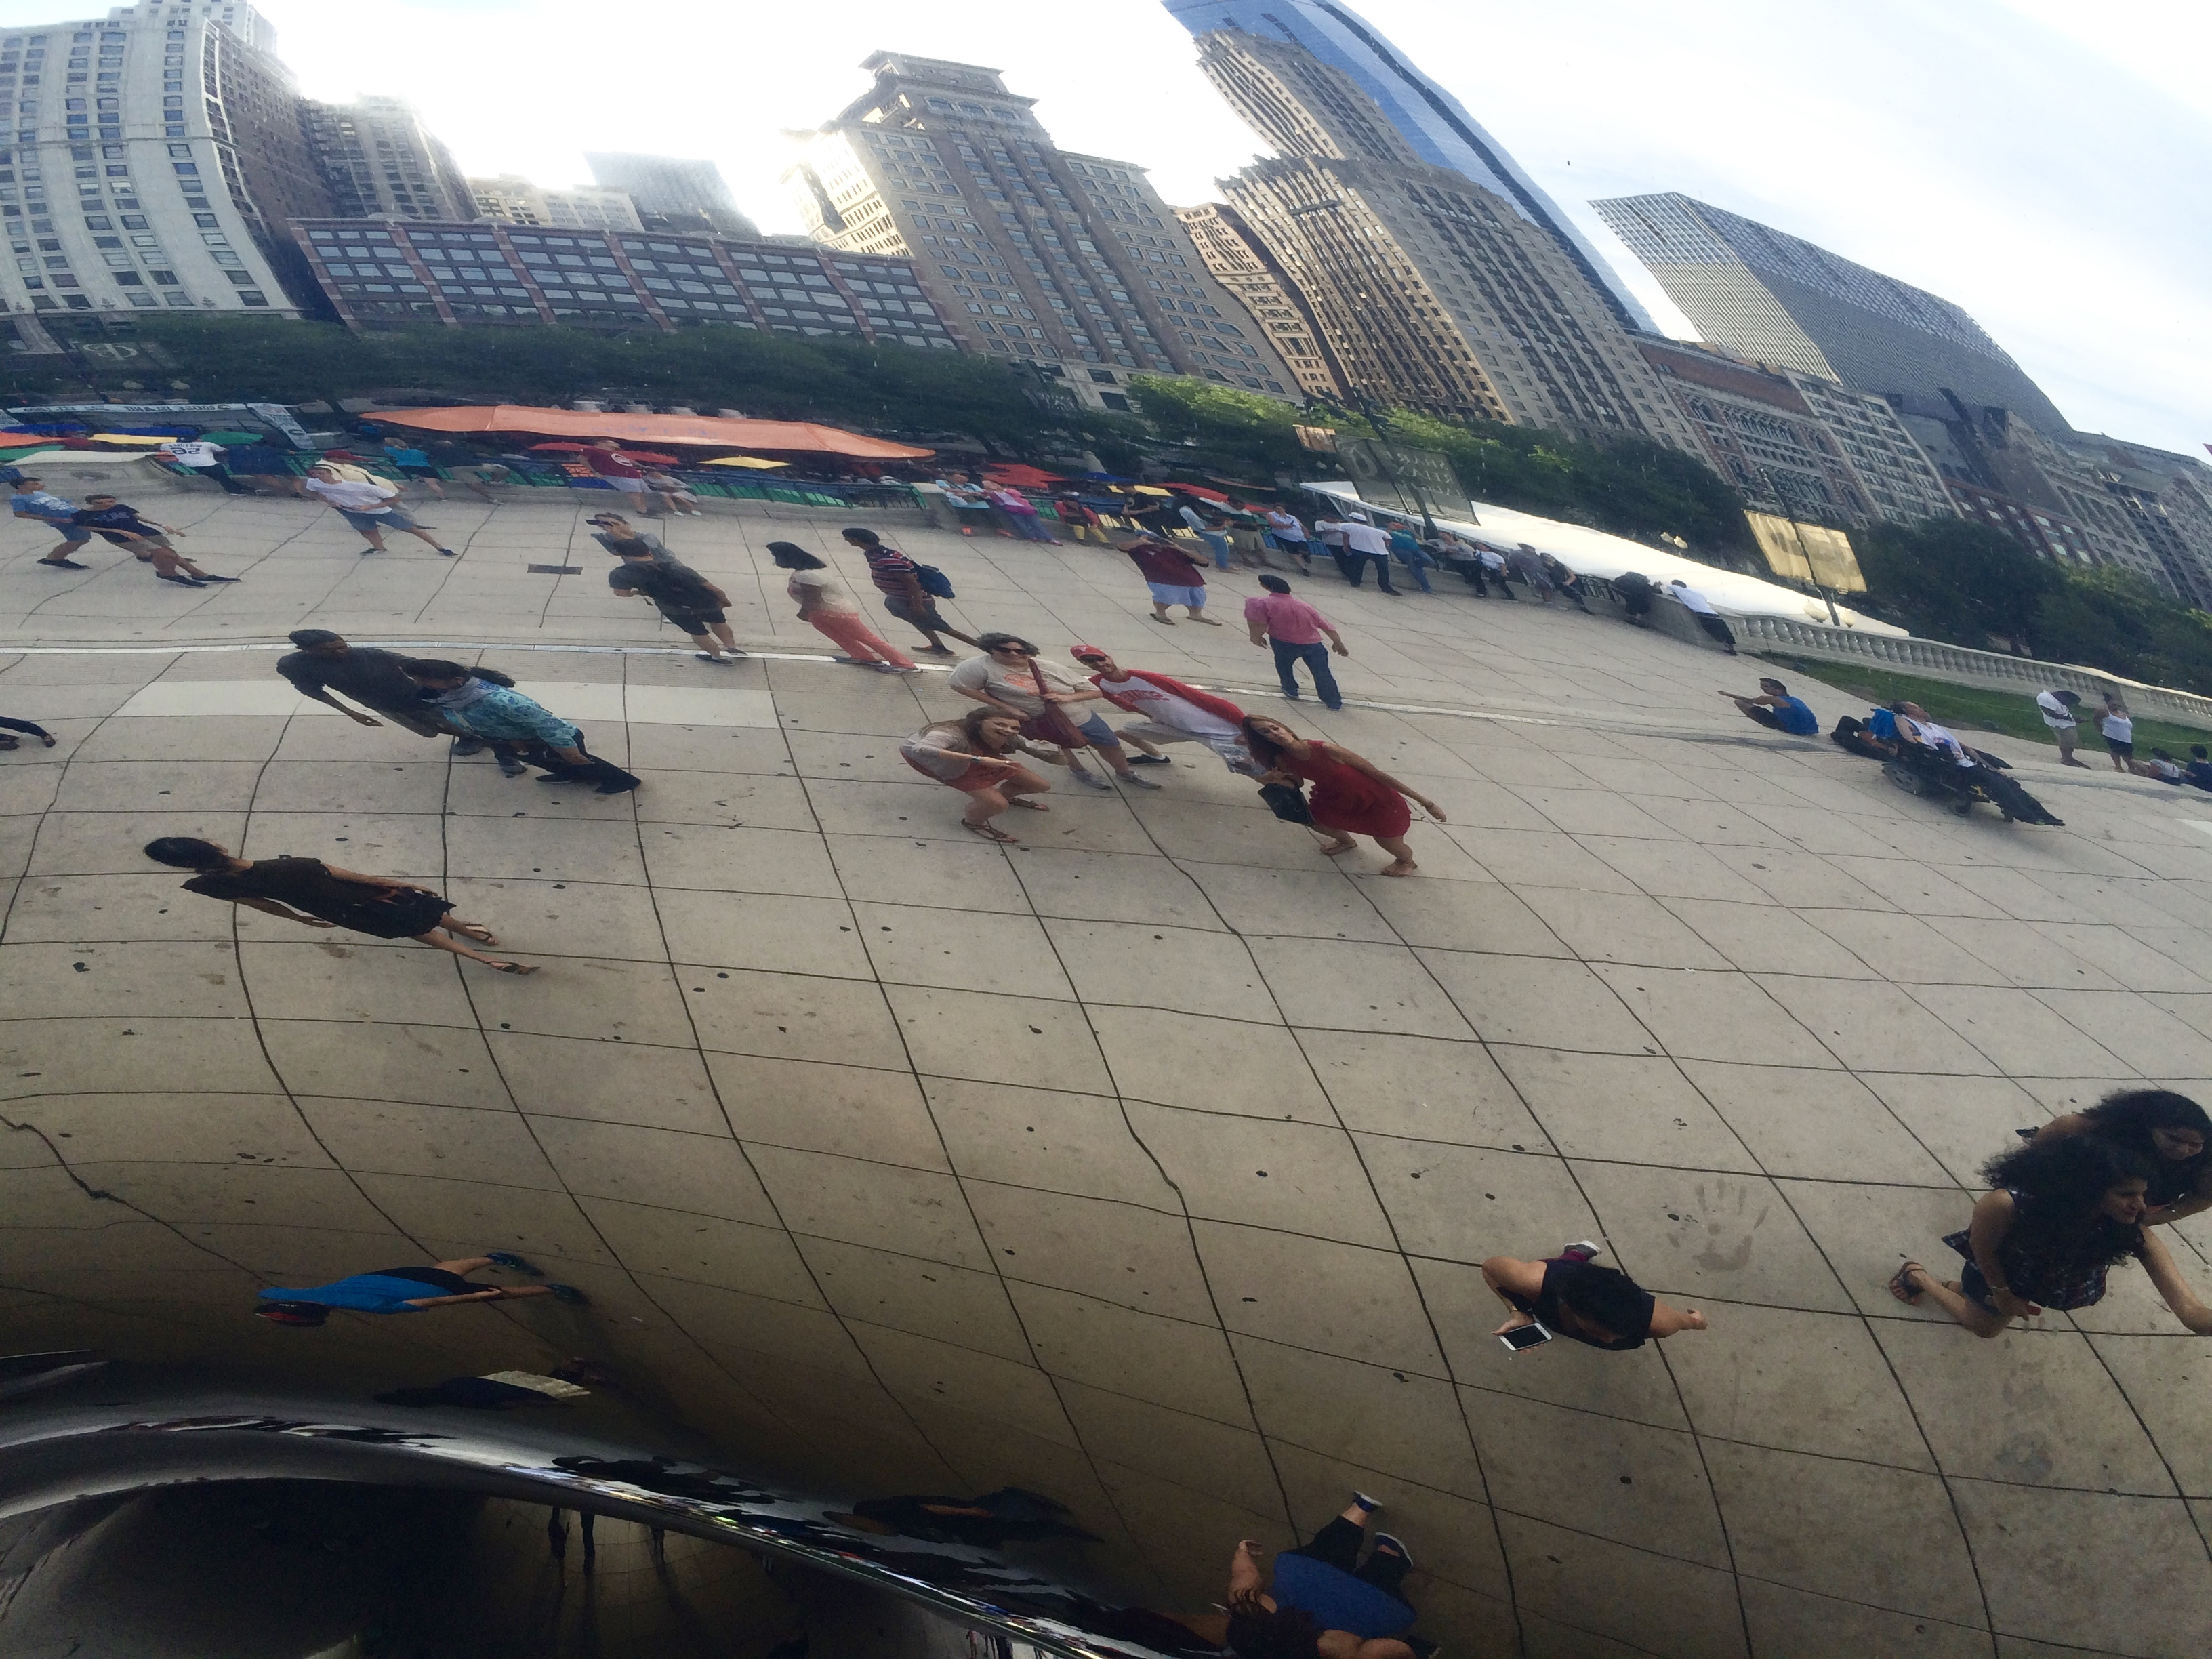 She got a kick out of the 9,000 photos we took at the bean (which apparently was in an American movie she had seen)